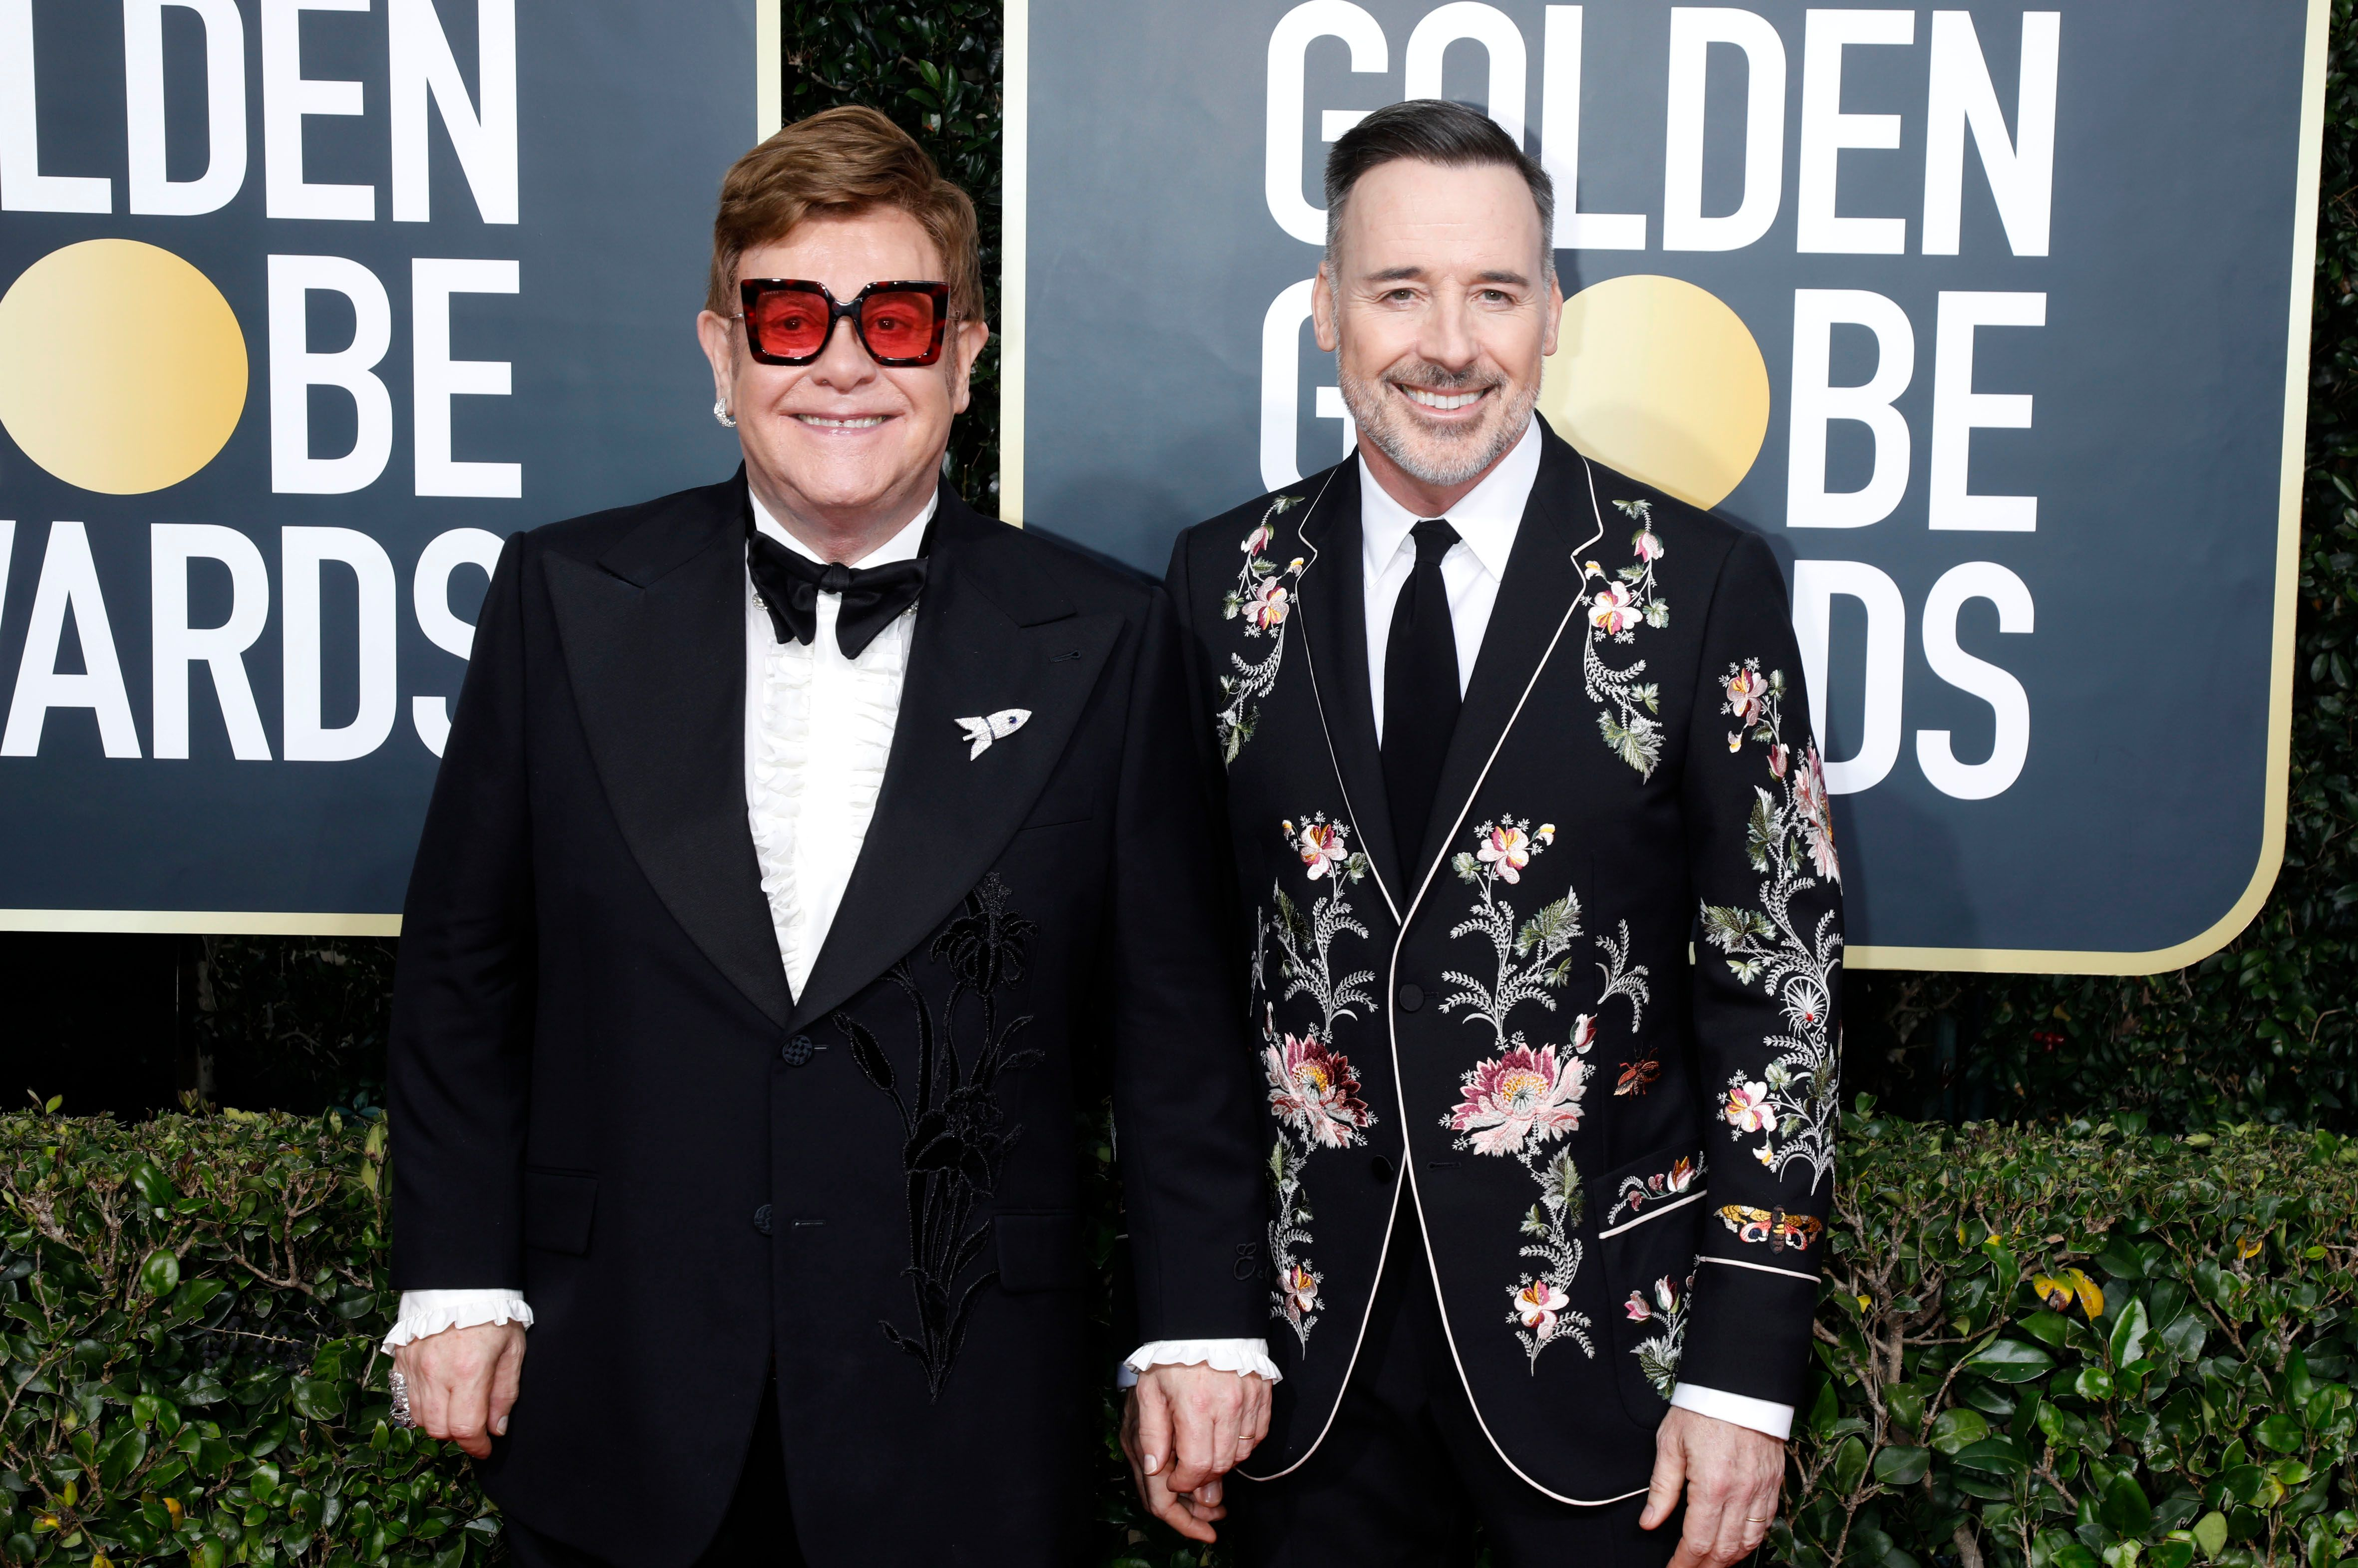 Elton John and David Furnish at the 77th Annual Golden Globe Awards on January 05, 2020, in Beverly Hills, California | Photo: P. Lehman/Barcroft Media/Getty Images